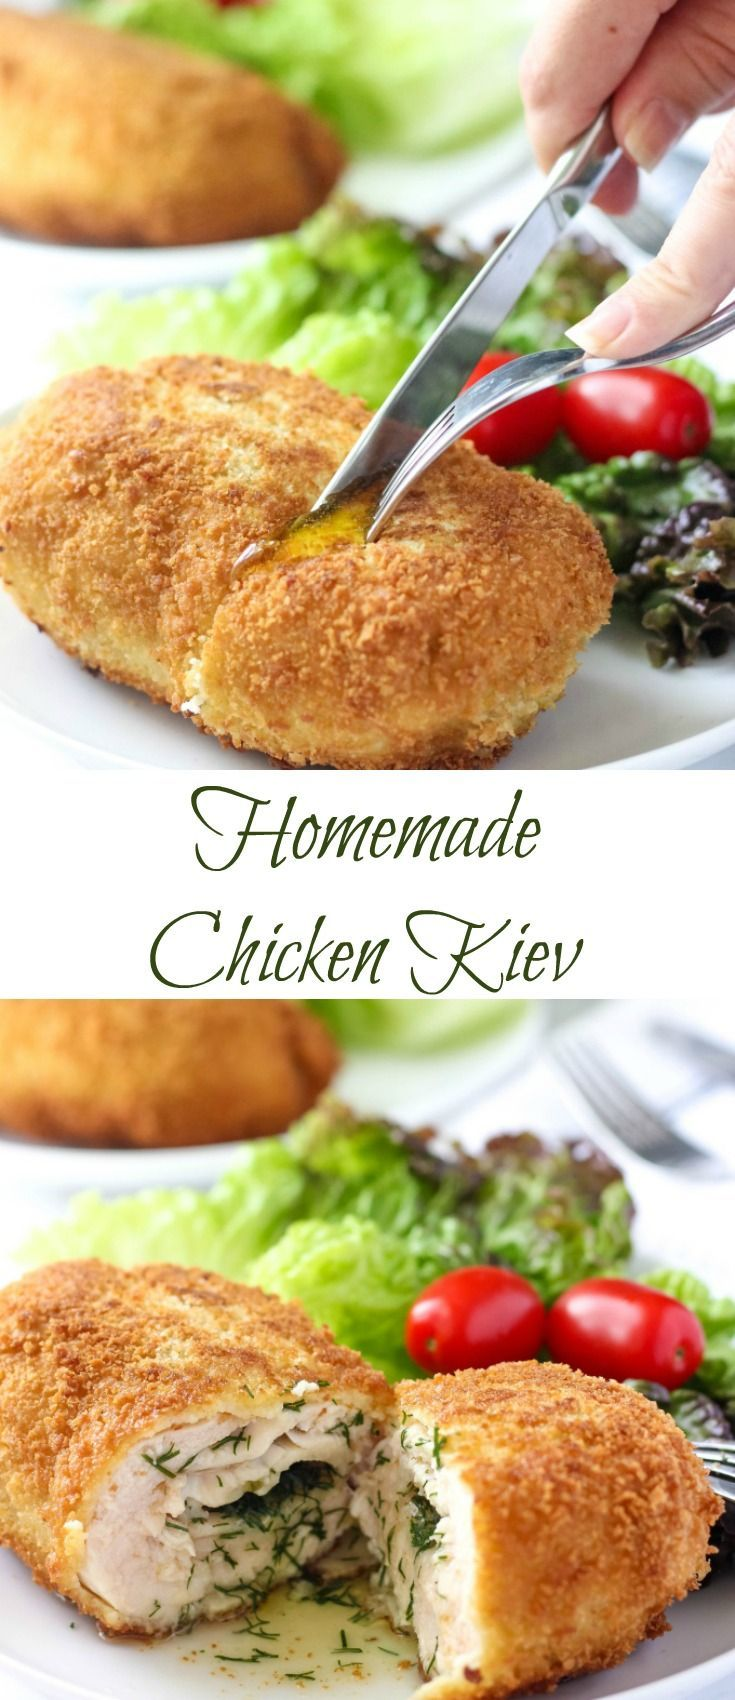 This Chicken Kiev Recipe is a BOMB. Follow my EASY step-by-step instructions to get the best AUTHENTIC Chicken Kiev. It's so good, you'll be making it again! #chickendinner #chickenrecipes